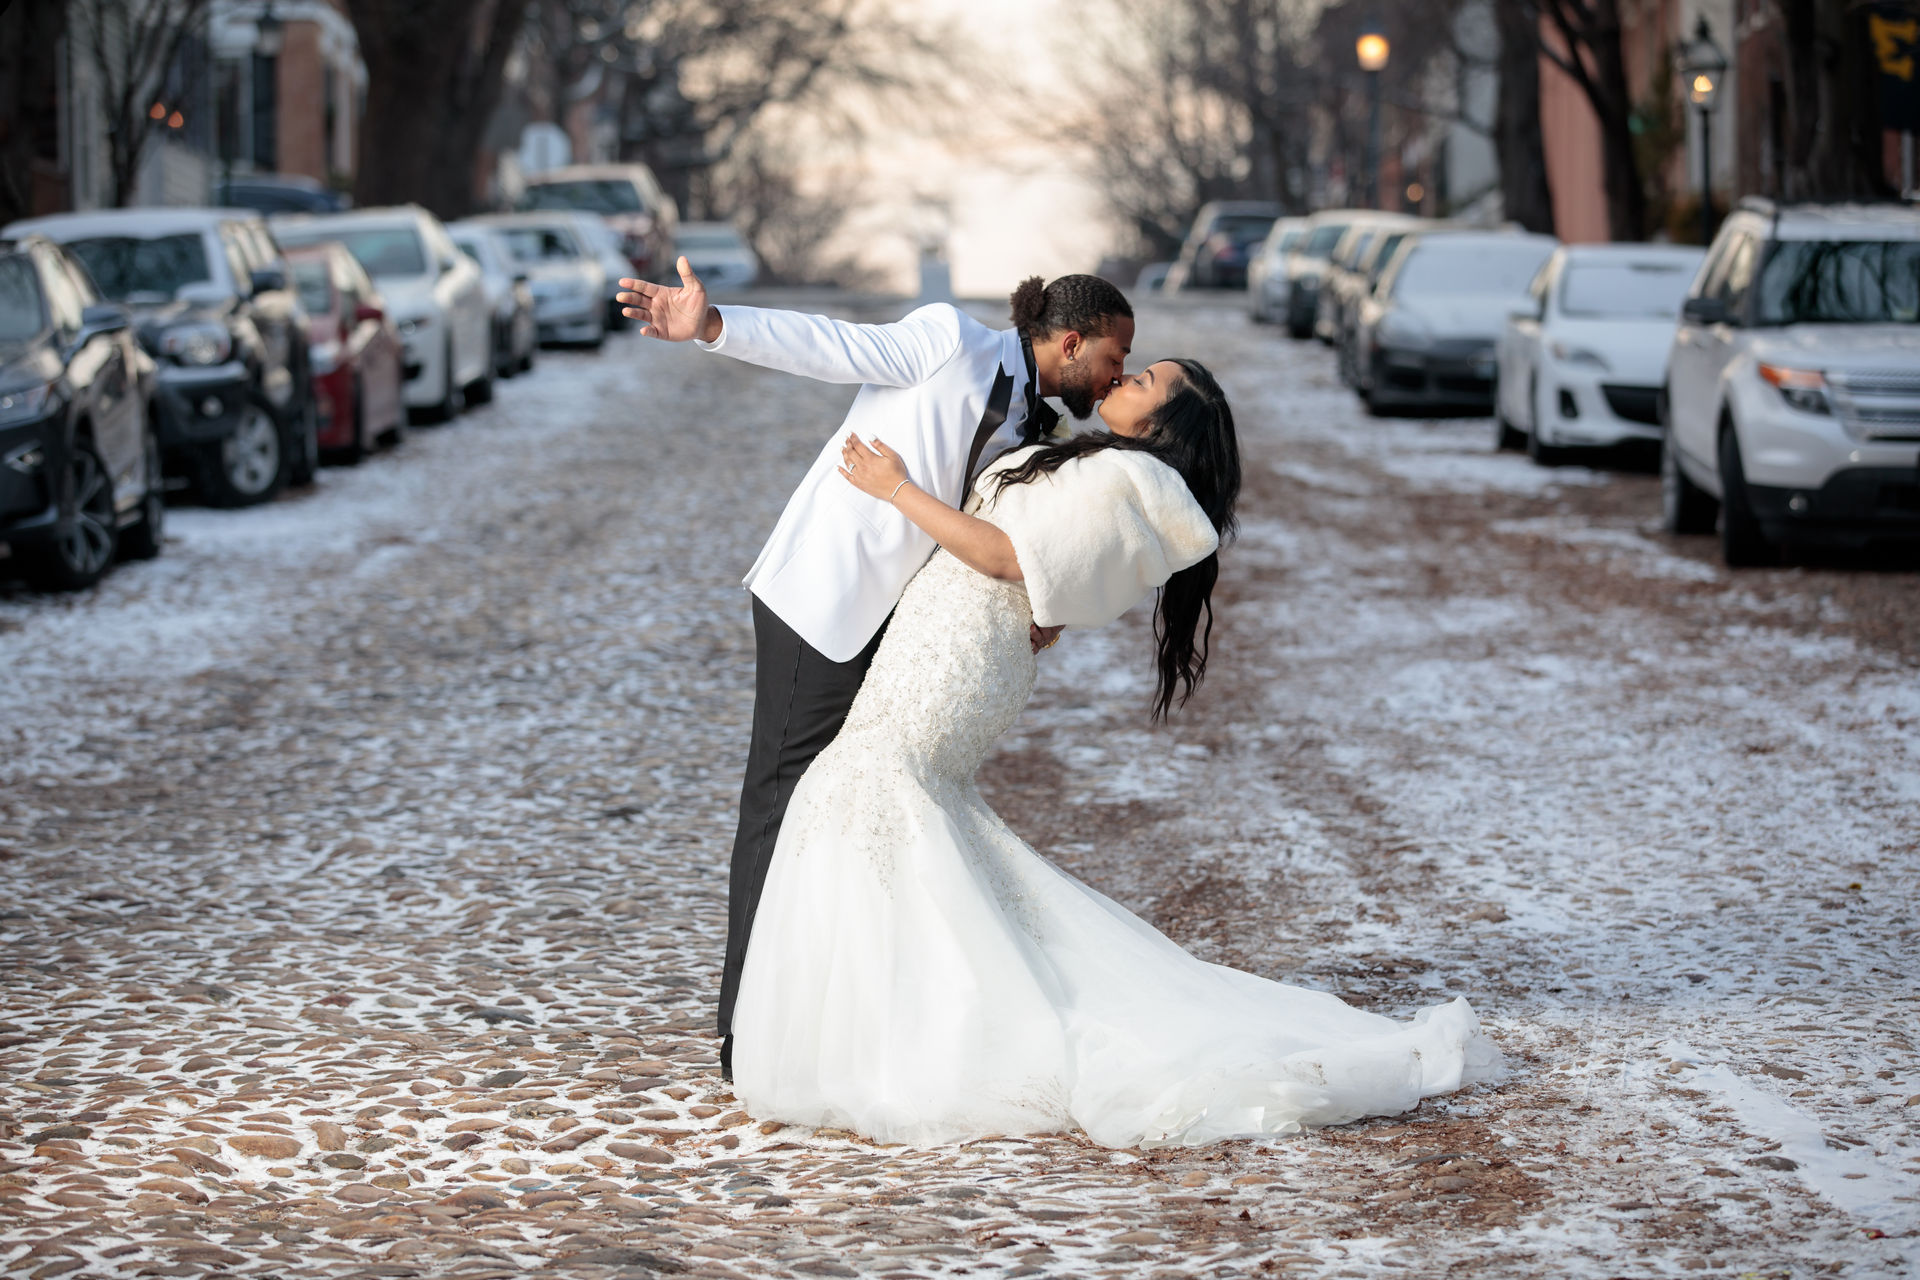 Formal wedding photo session in Old Town Alexandria